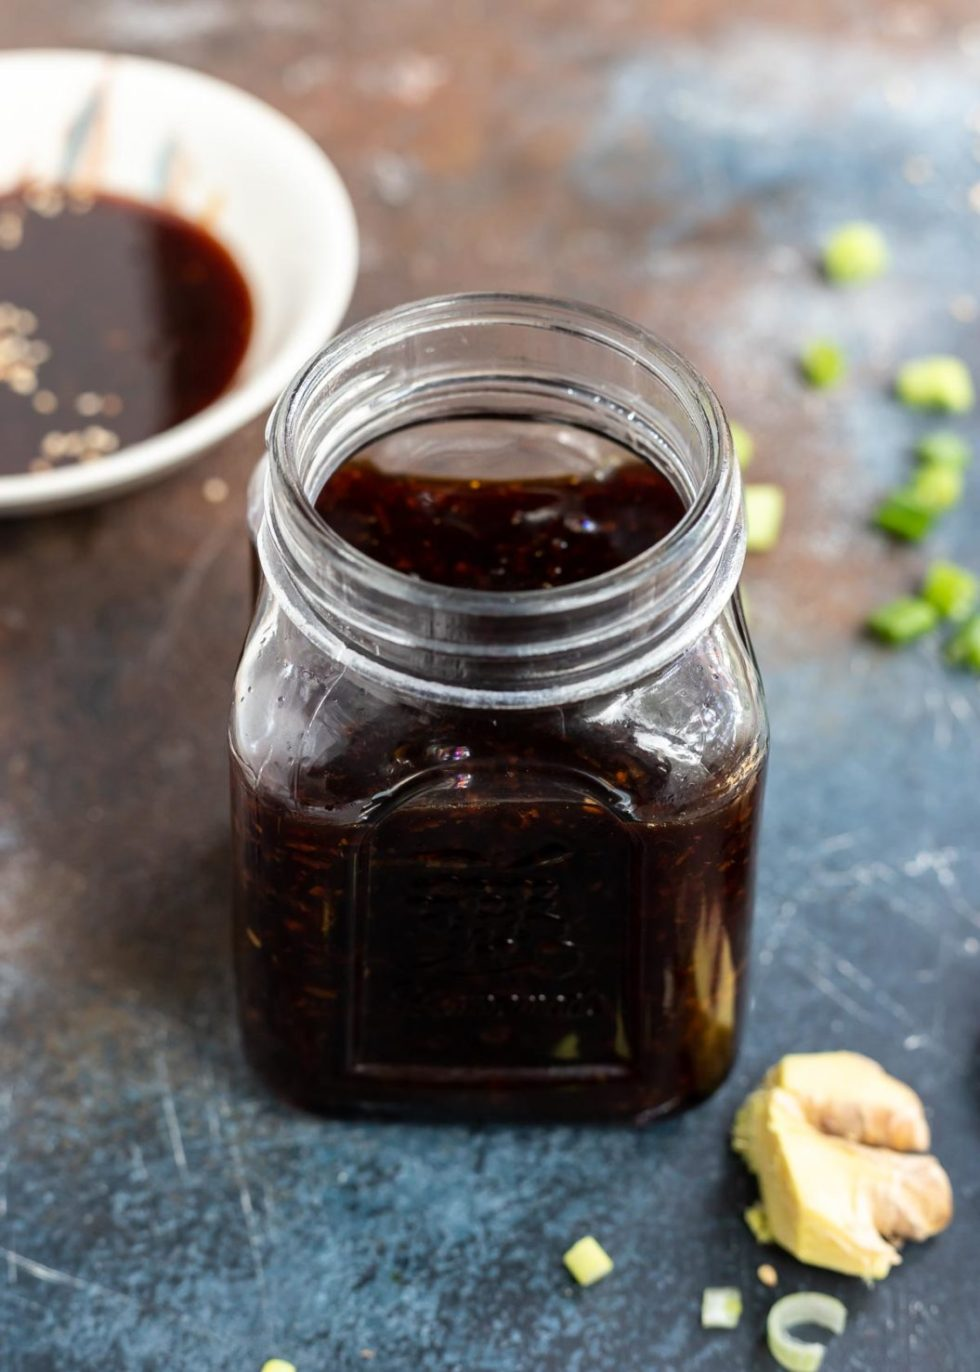 teriyaki sauce in clear glass jar